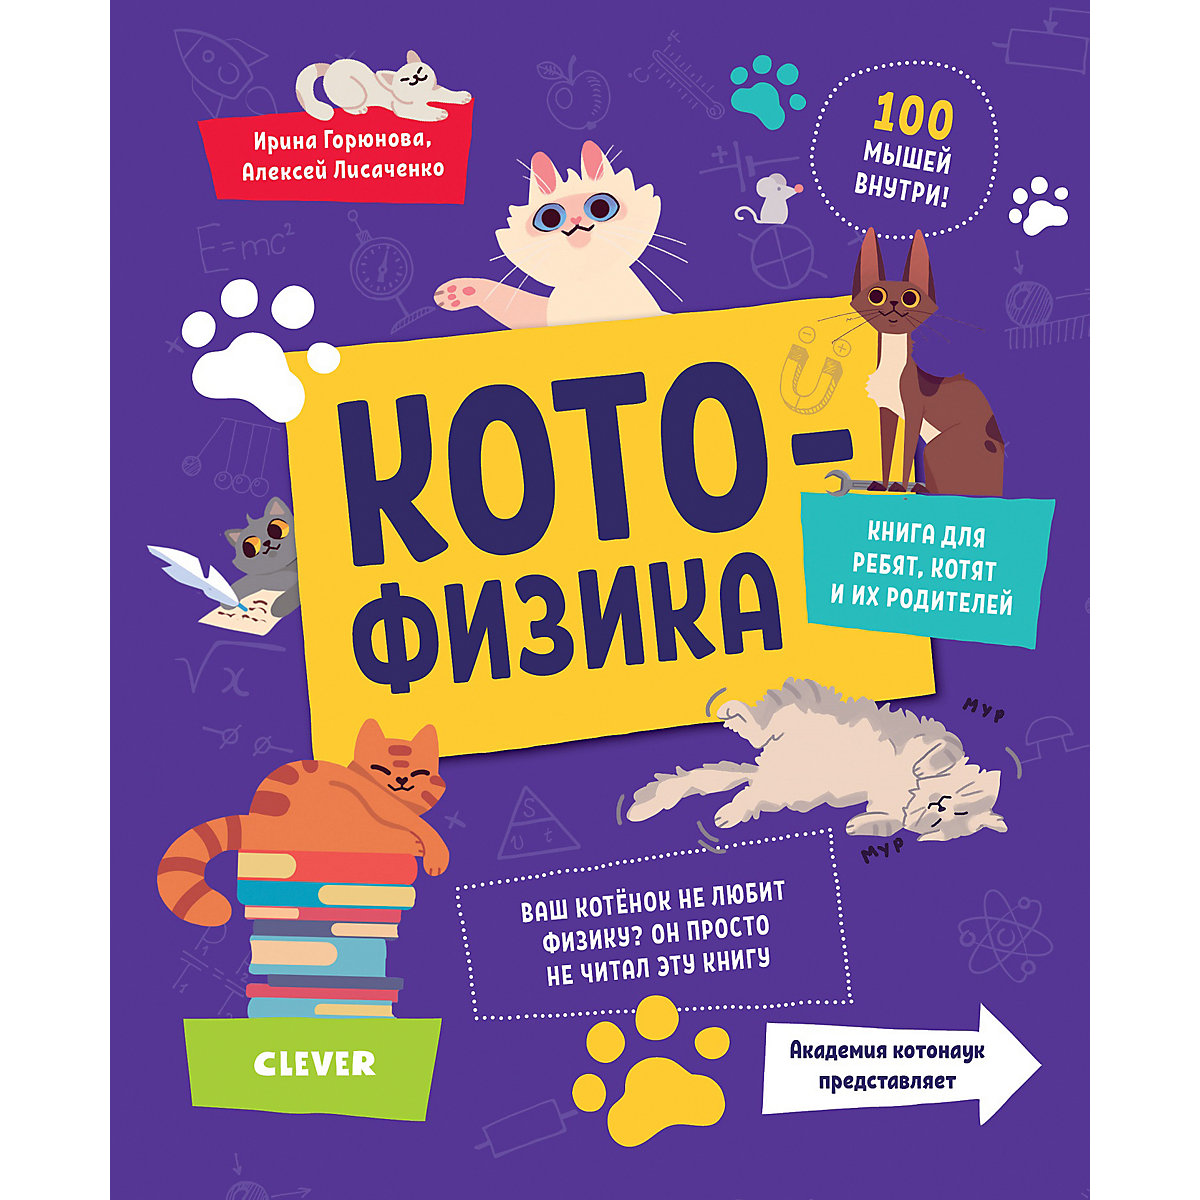 Books CLEVER 10262570 Children Education Encyclopedia Alphabet Dictionary Book For Baby MTpromo